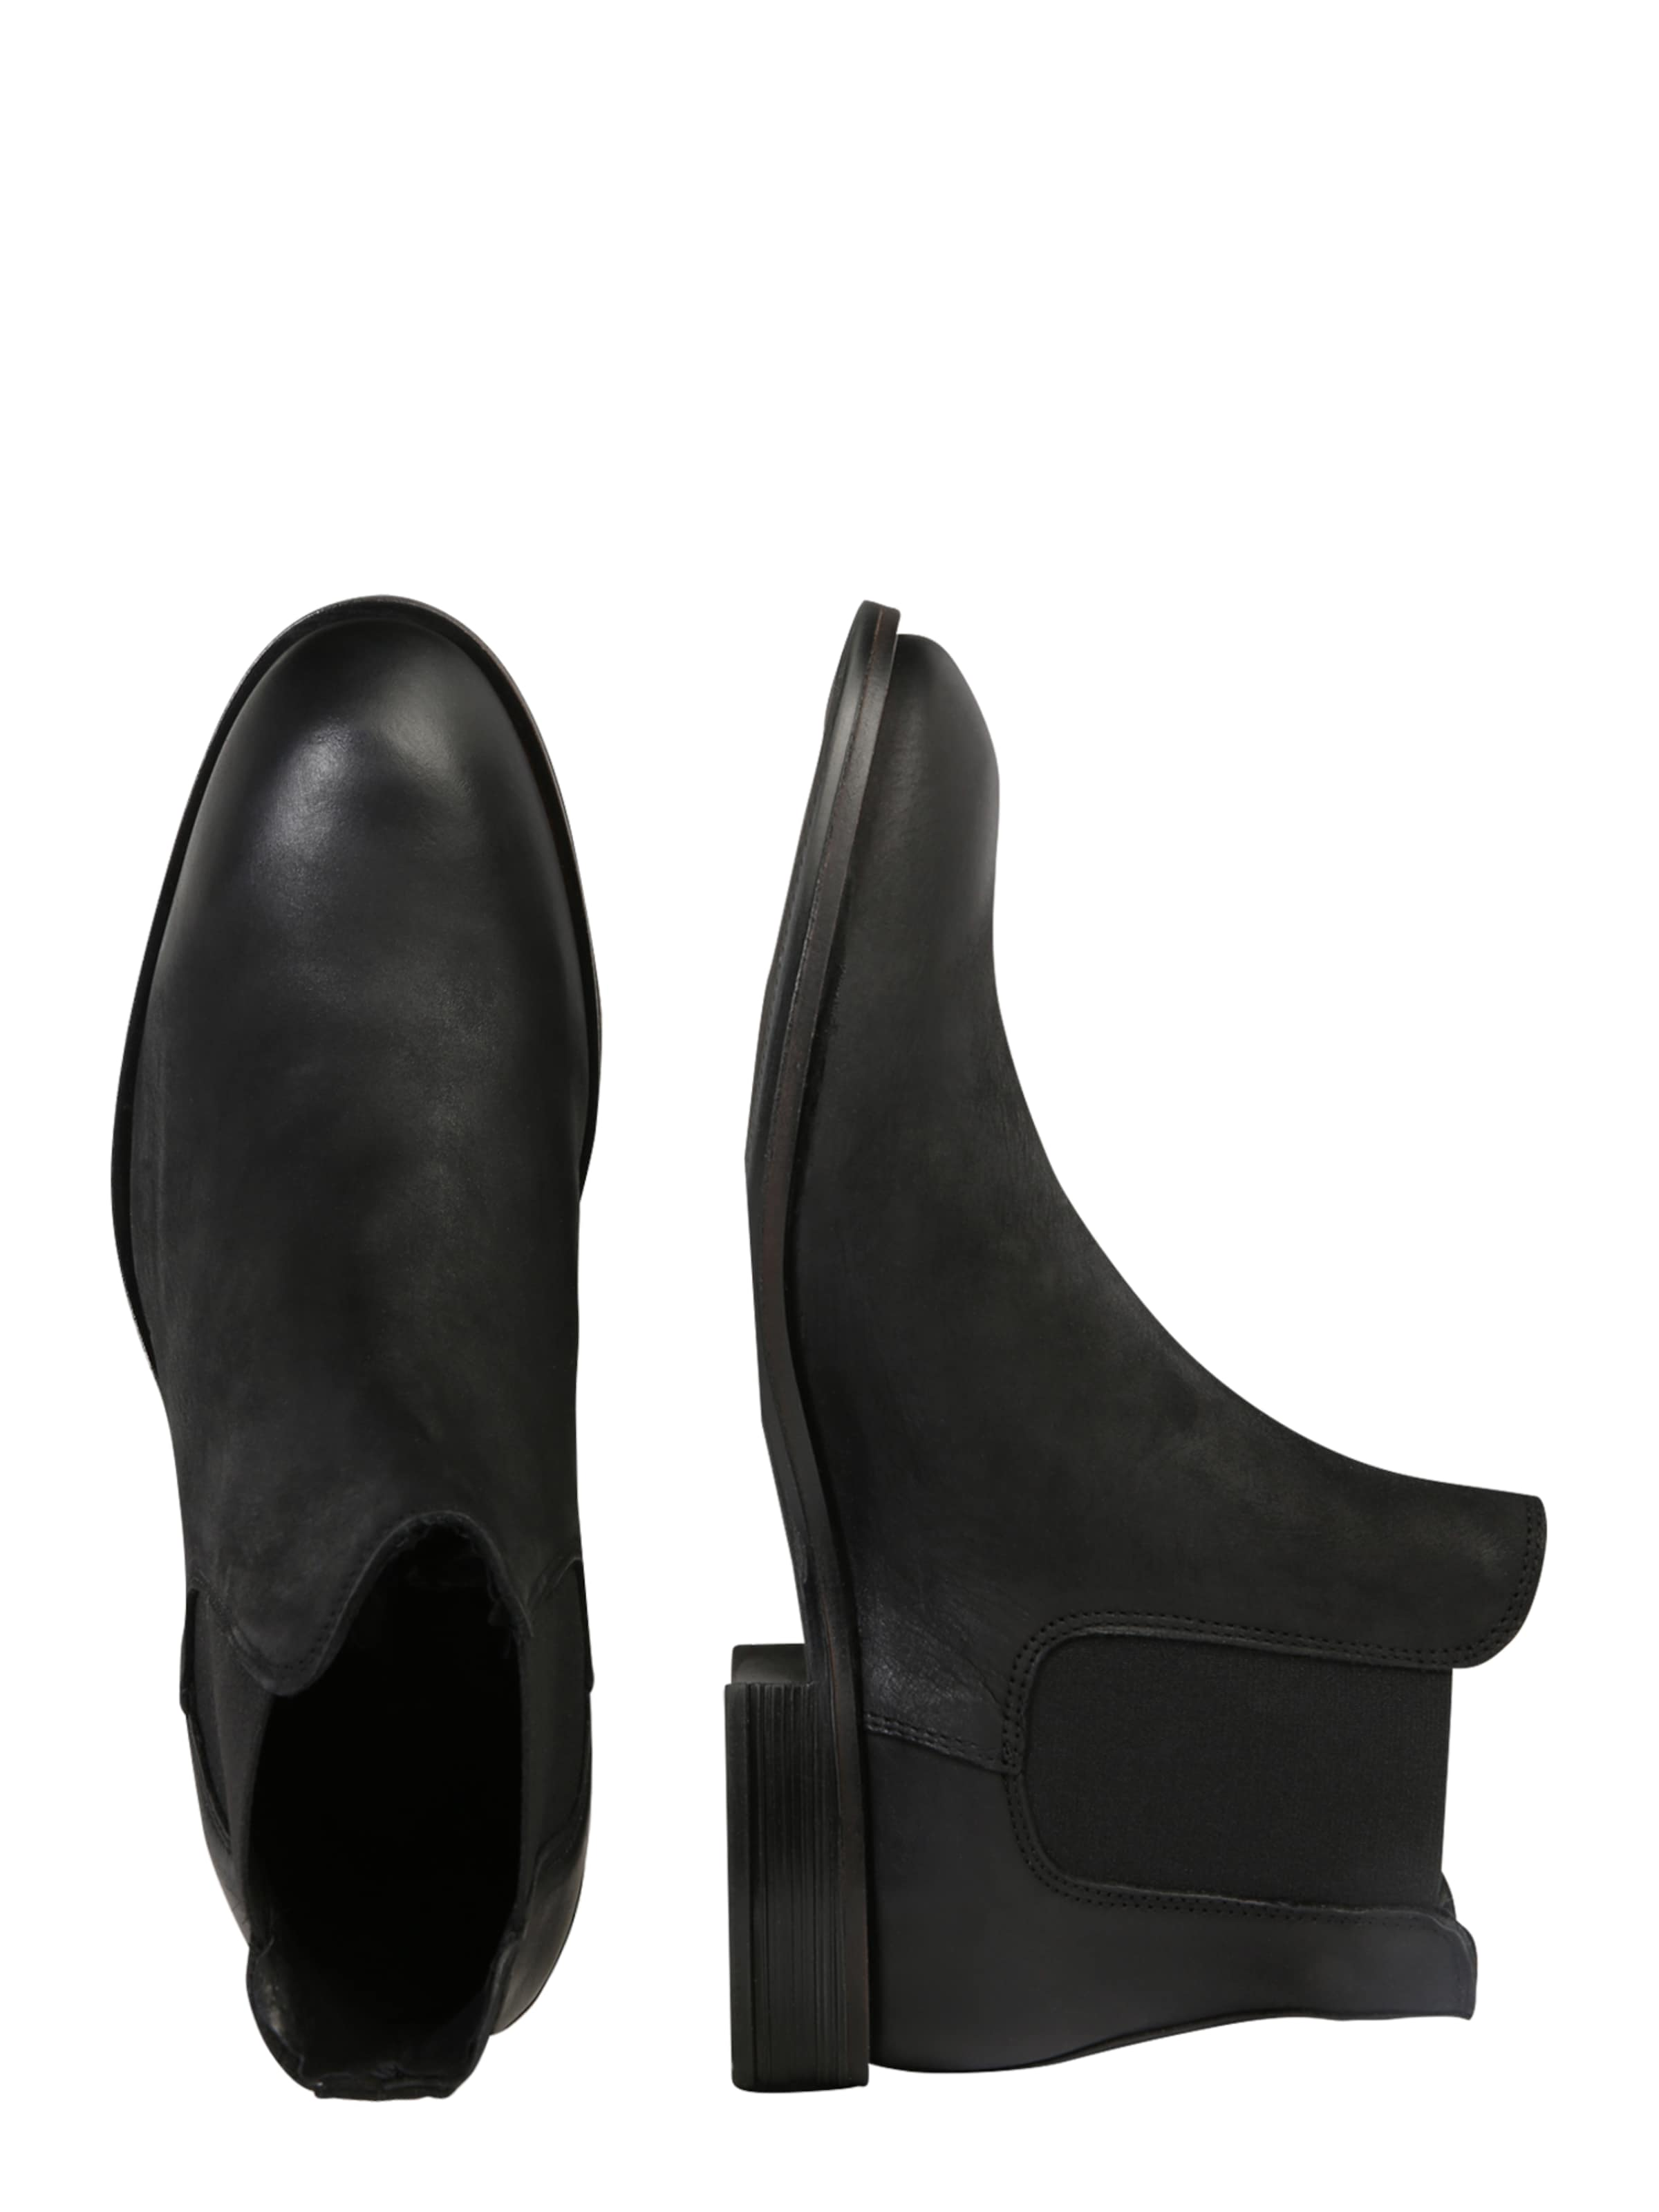 Chelsea Boots Boots Bianco Chelsea Chelsea Noir En Bianco Boots Bianco Noir En wN80POXnk